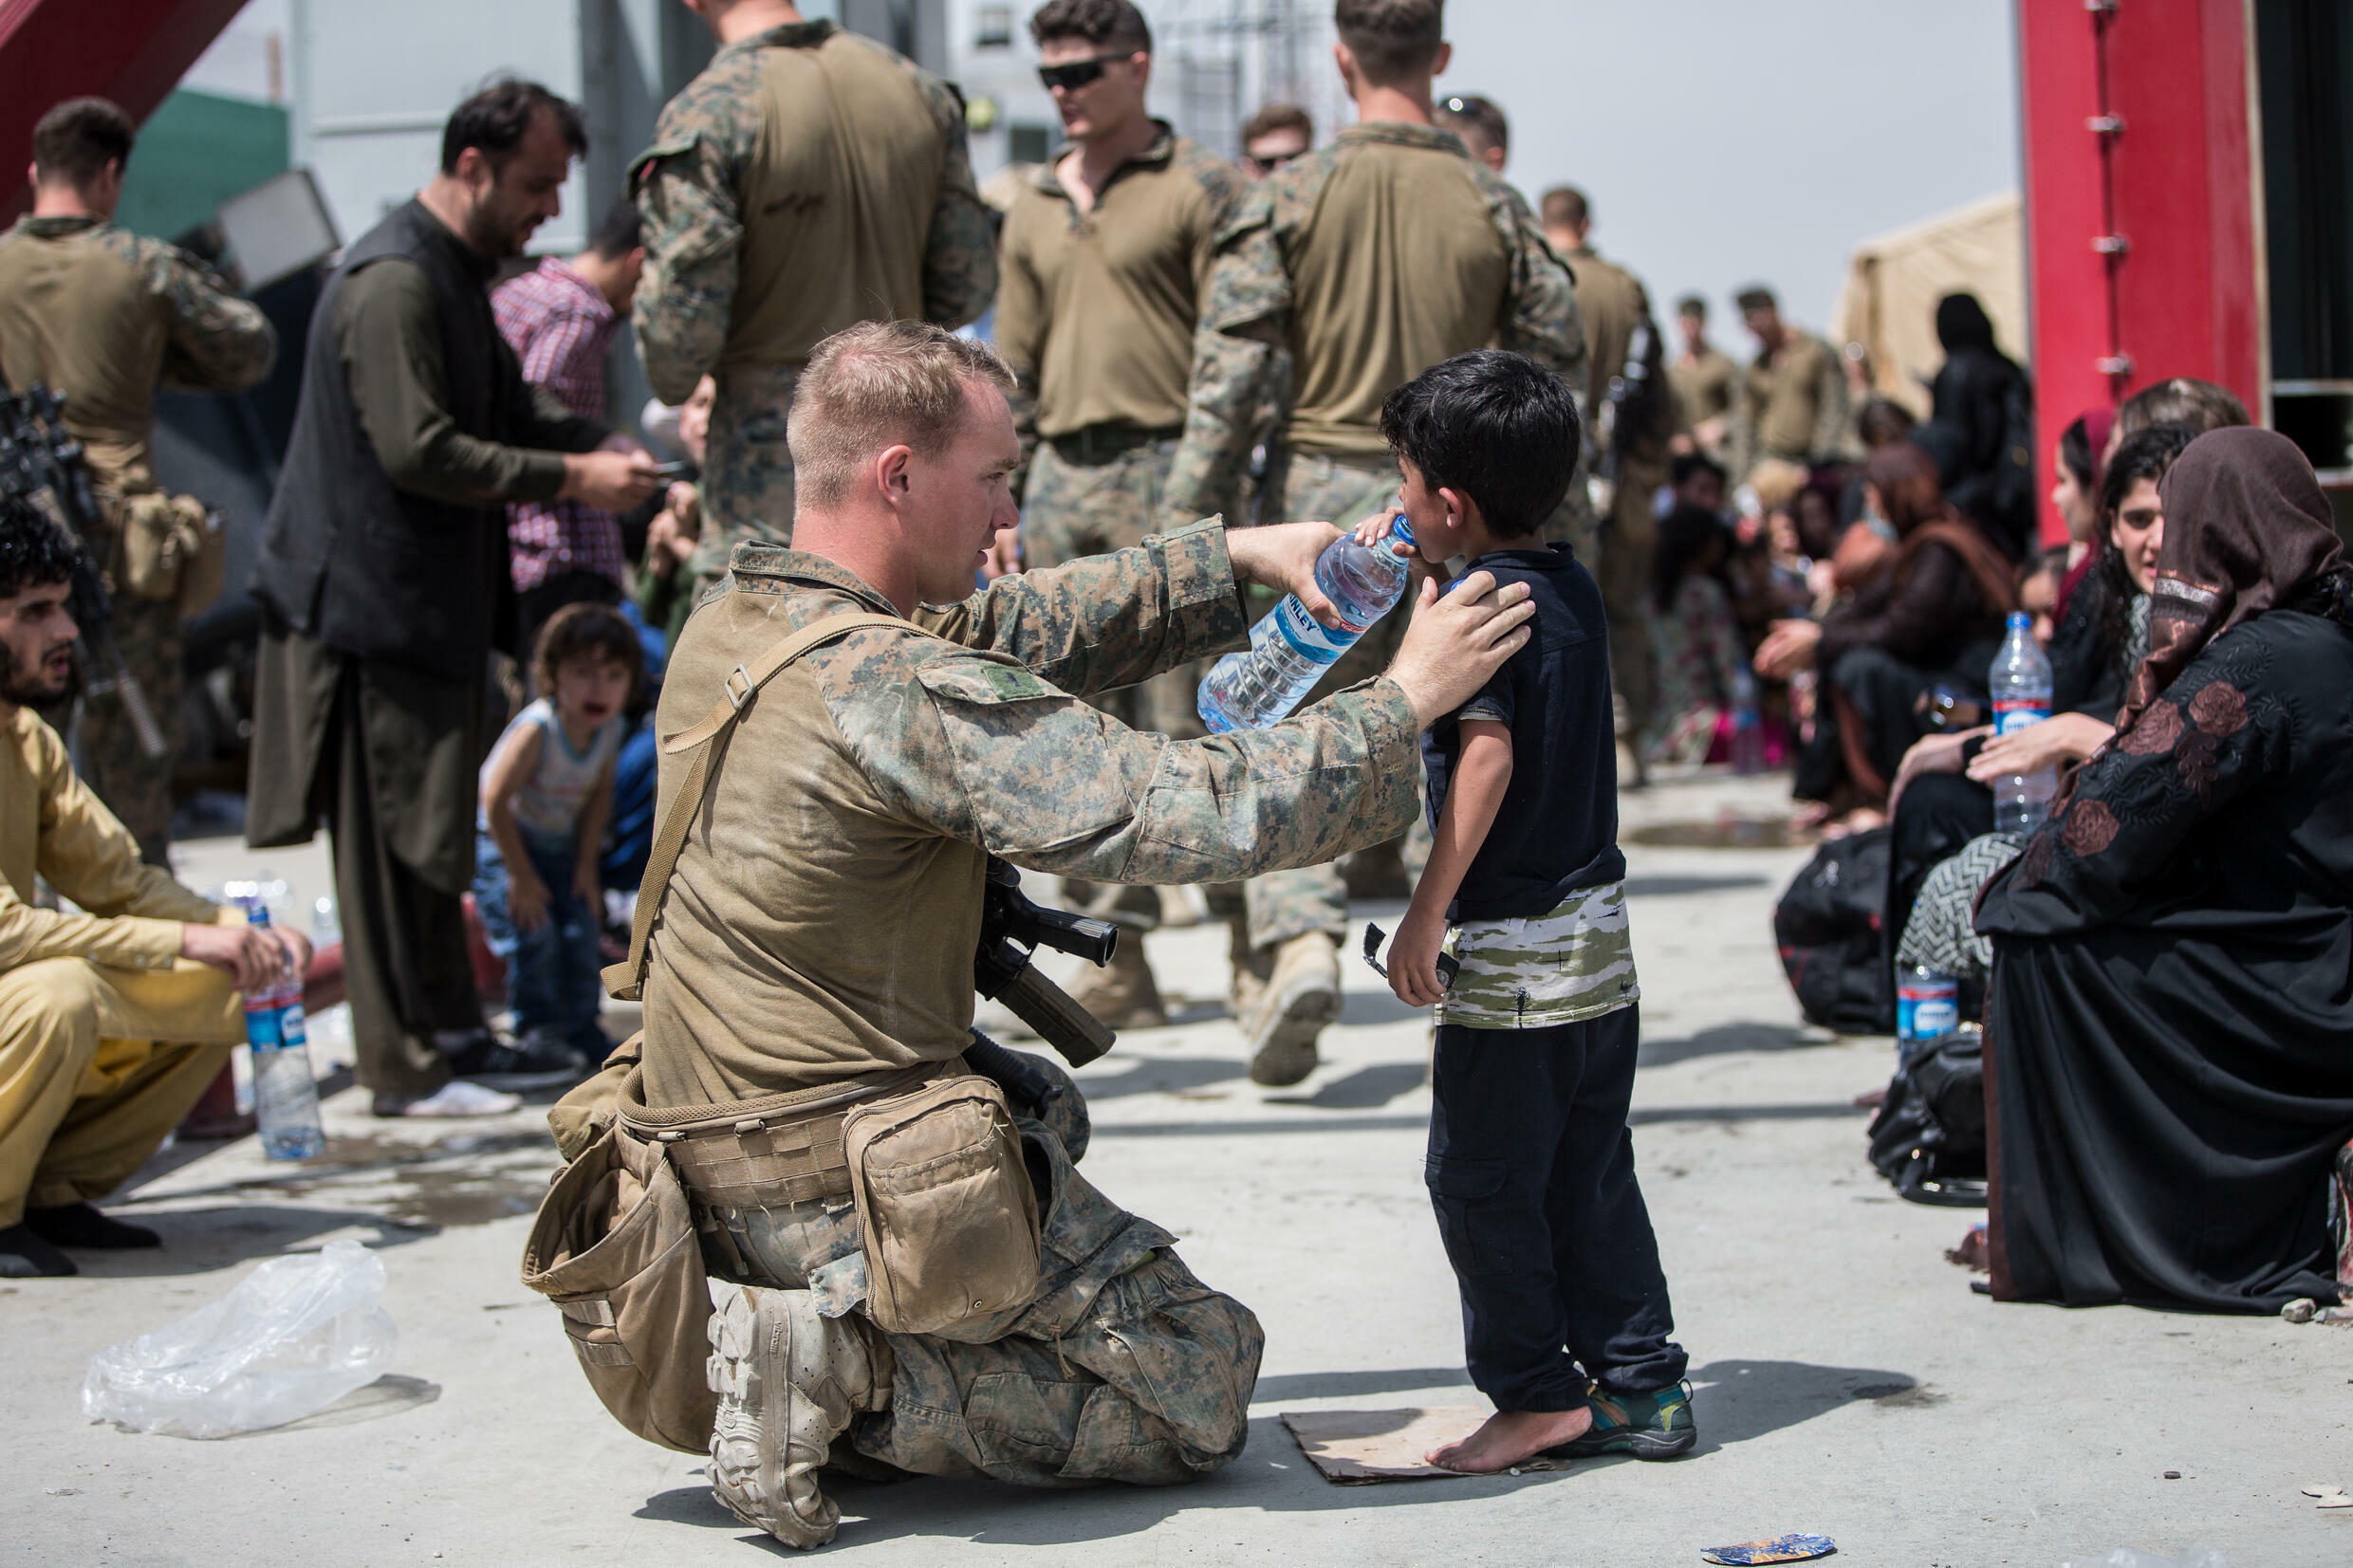 On August 20, 2021, a U.S. Navy man gives fresh water to a baby at Kabul Airport